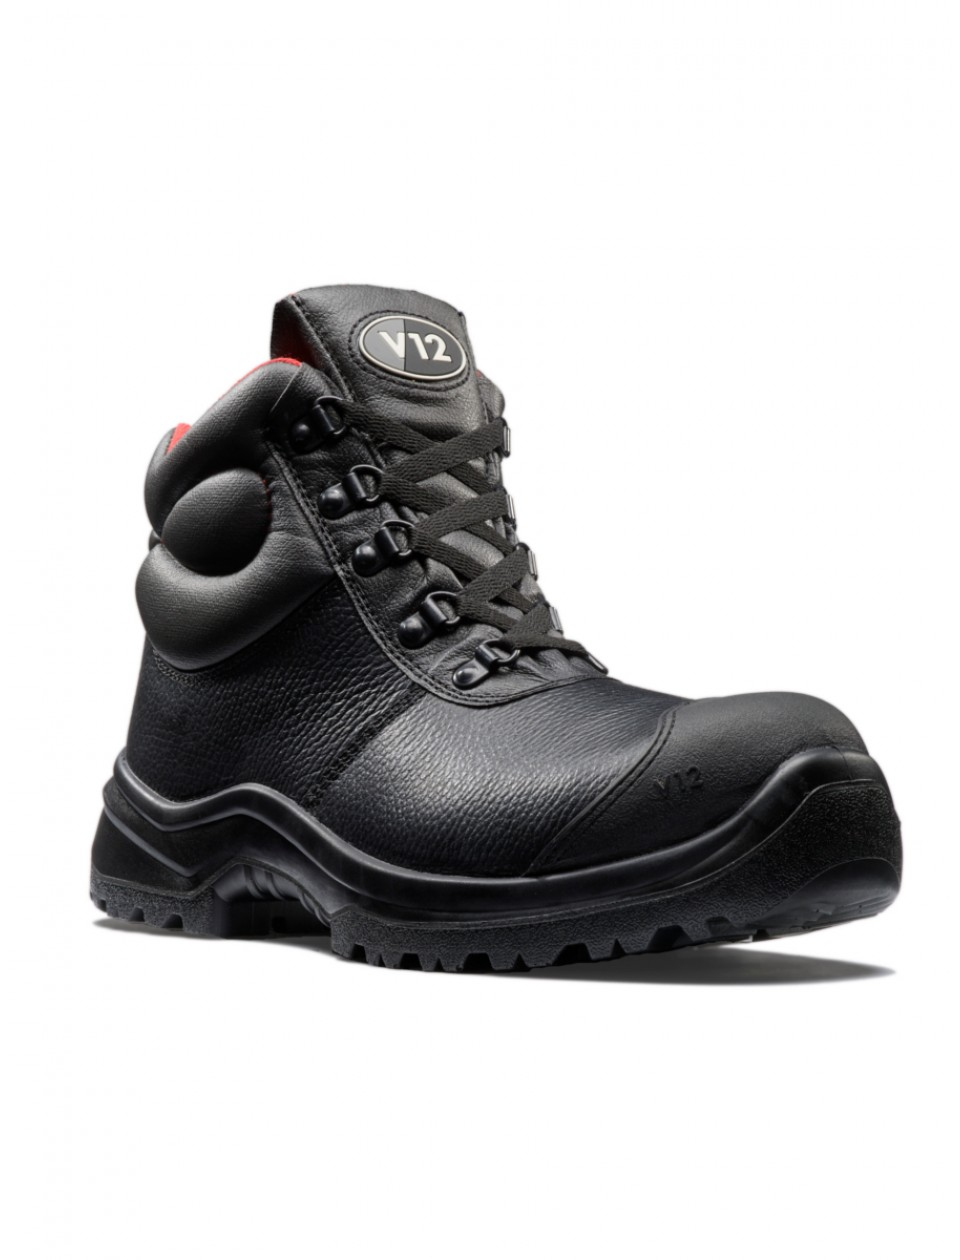 V12 Rhino V6863.01 Safety Boots